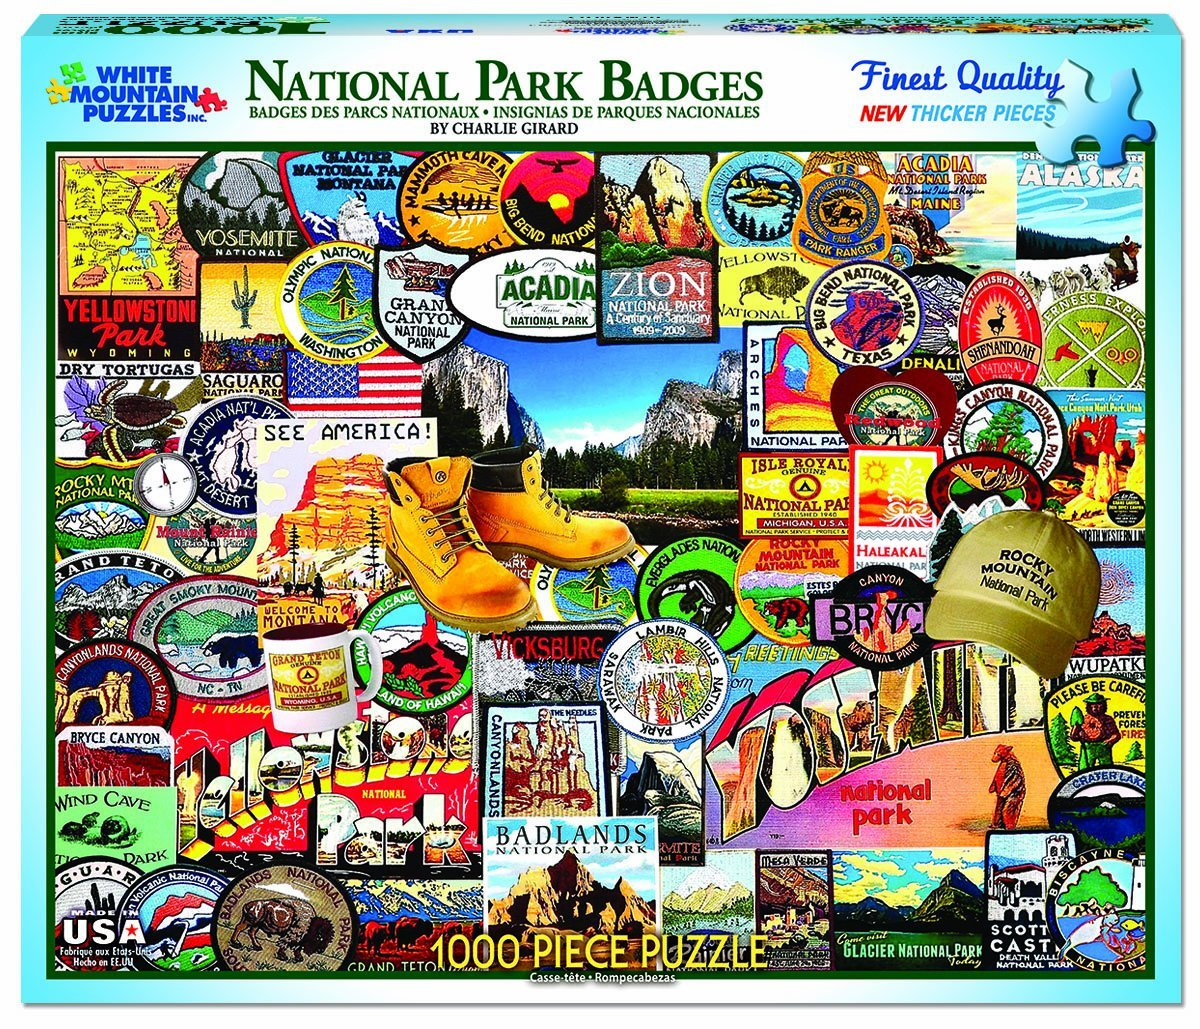 White Mountain Puzzles National Park Badges Collage